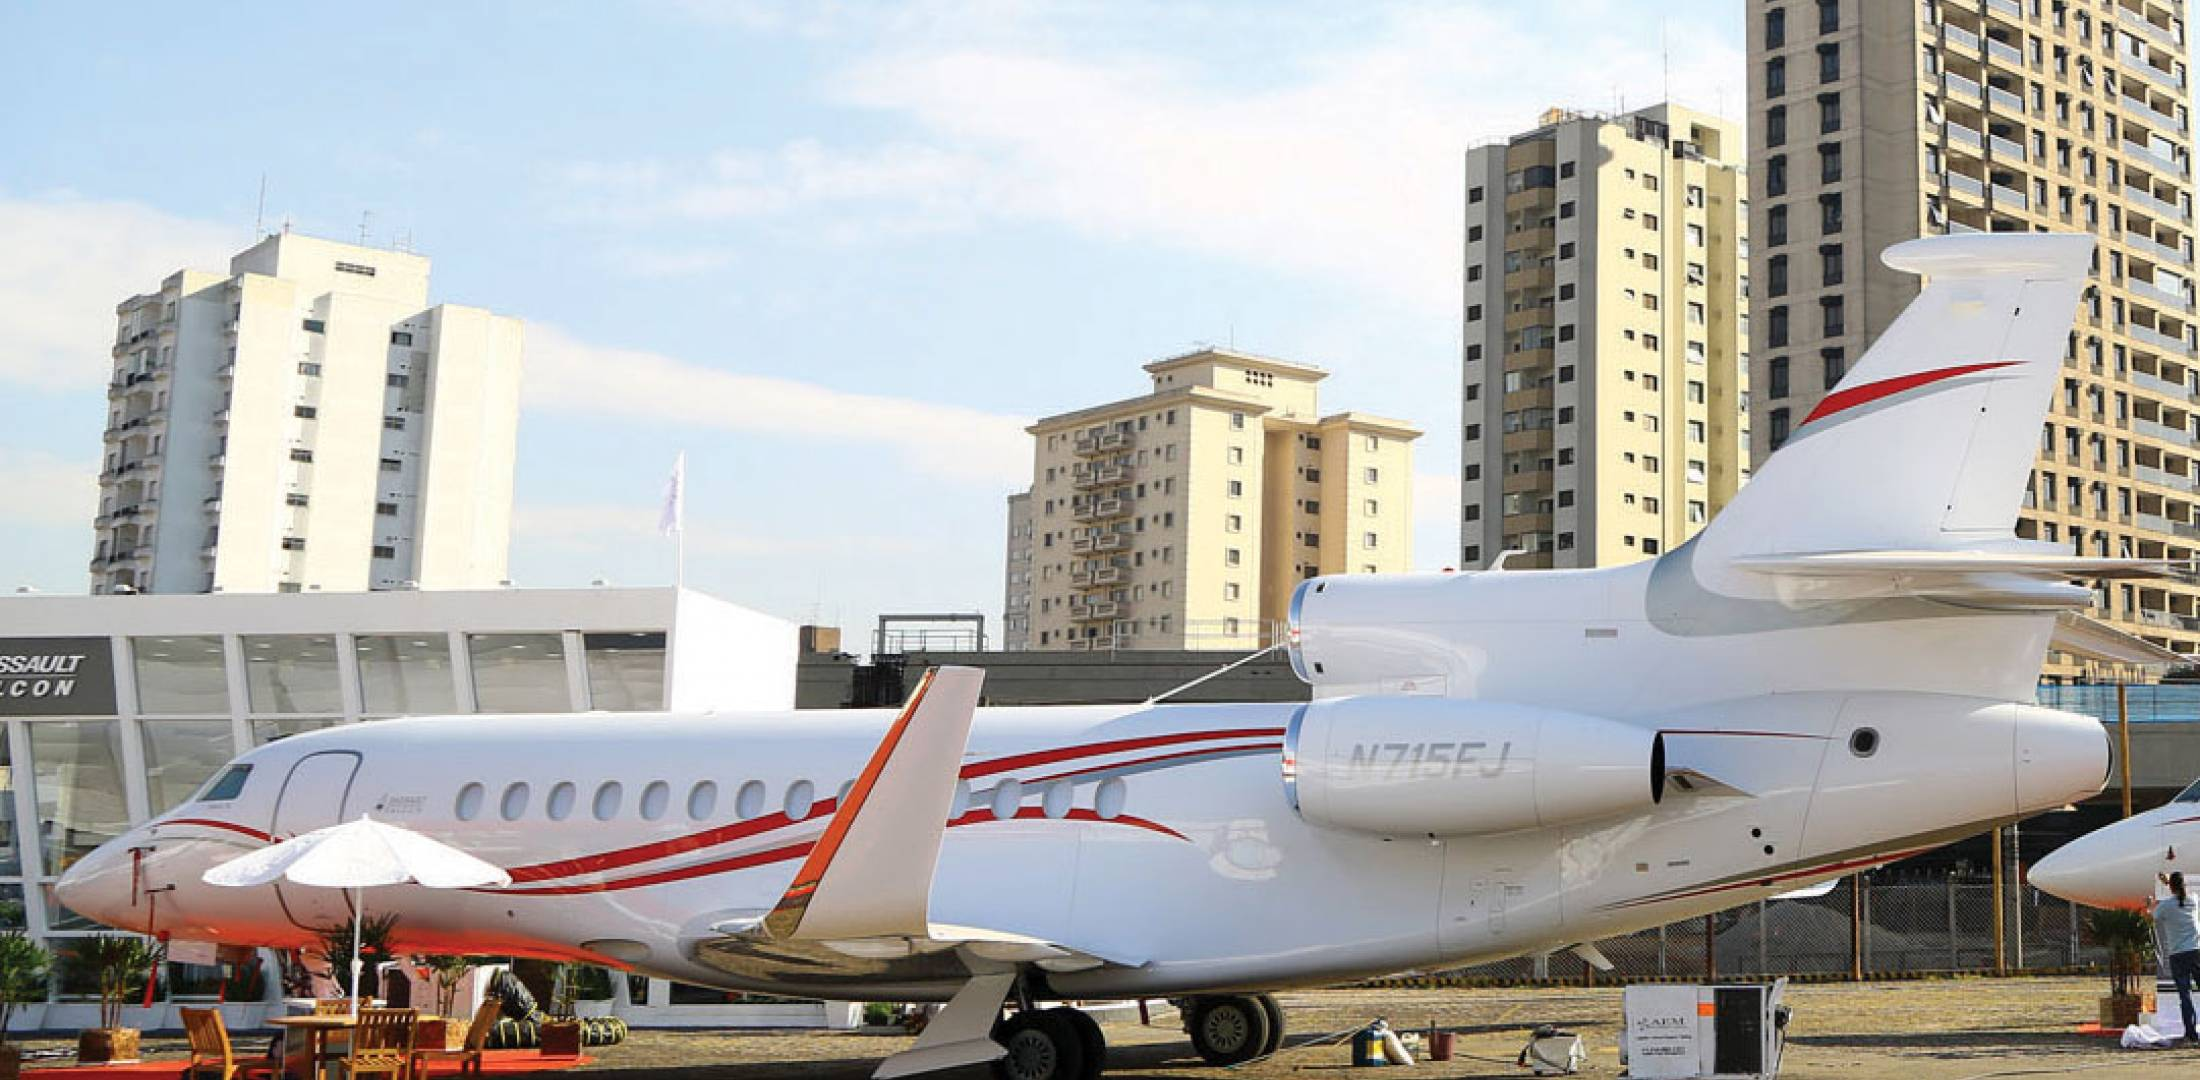 Dassault Falcon Jet brought its flagship 7X (foreground) and 2000LXS/S models to LABACE, highlighting the airframer's conviction that Latin America is an important market. (Photo: David McIntosh)